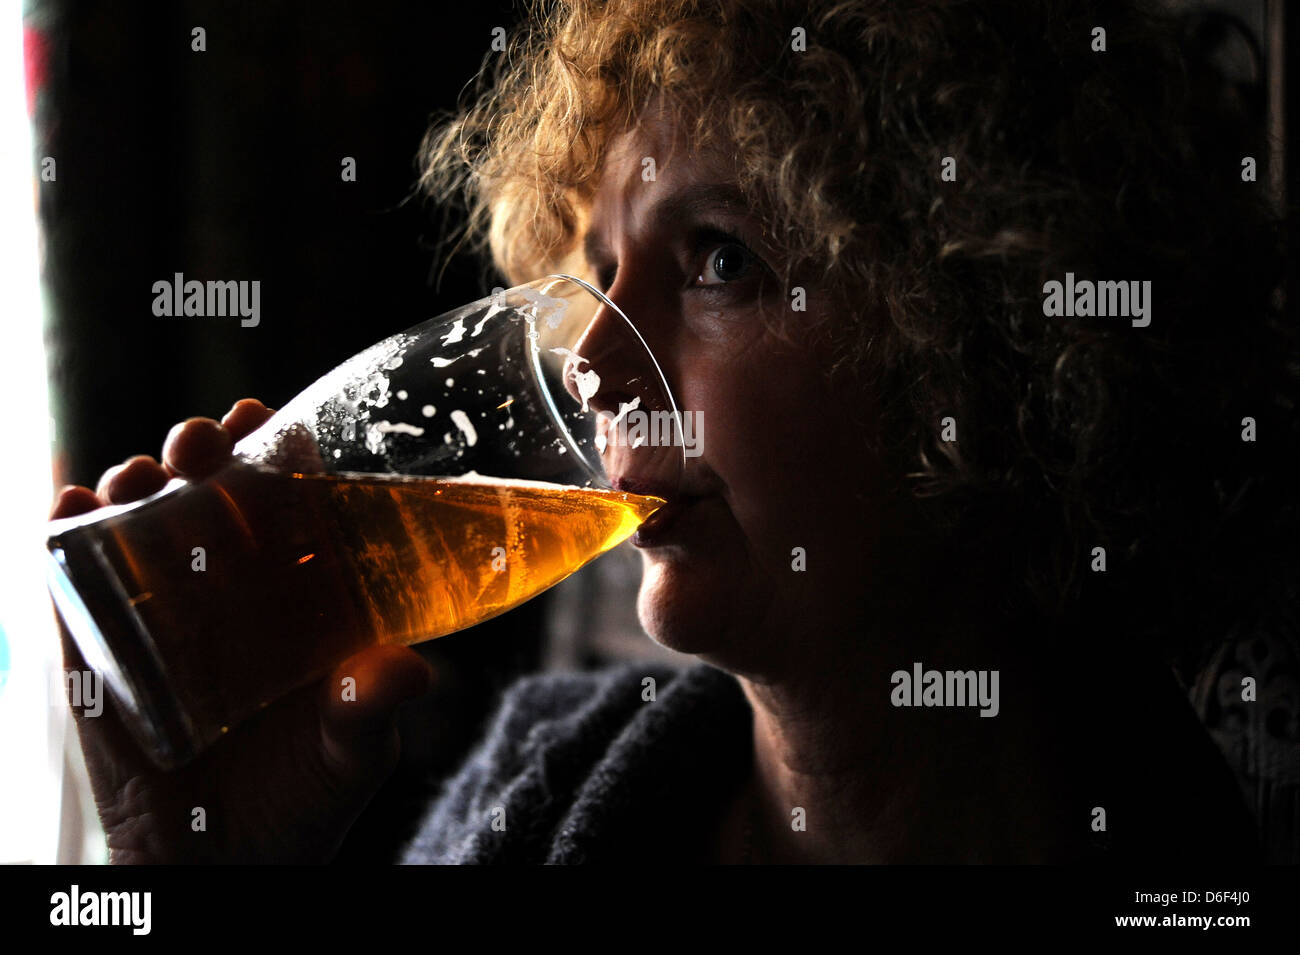 Woman drinking a pint of beer in a British pub UK - Stock Image